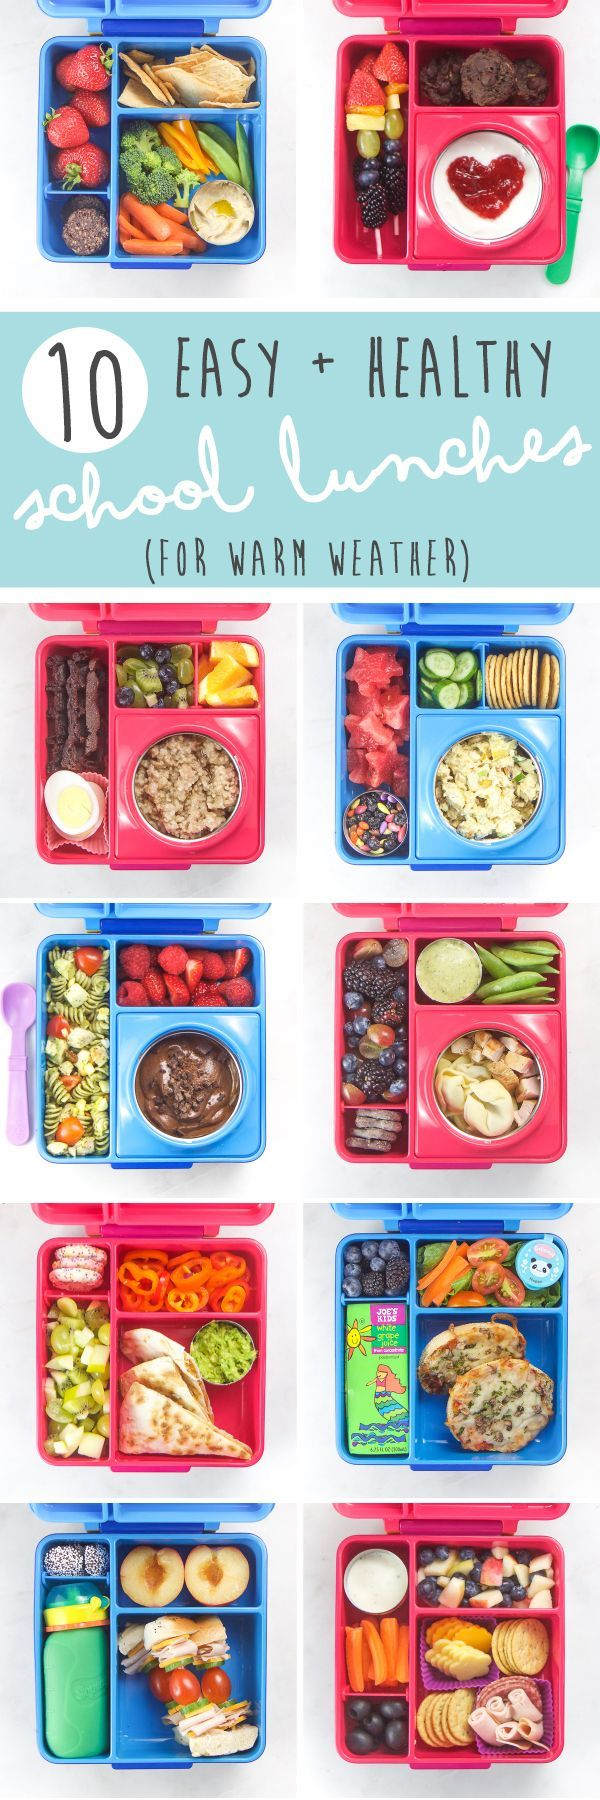 These 10 Easy + Healthy School Lunches for Warm Weather are our go-to school lunches that my kids love. Full of bright, colorful and healthy foods, these lunches are packed with taste as well as nutrients to keep your kids healthy and full all day long!